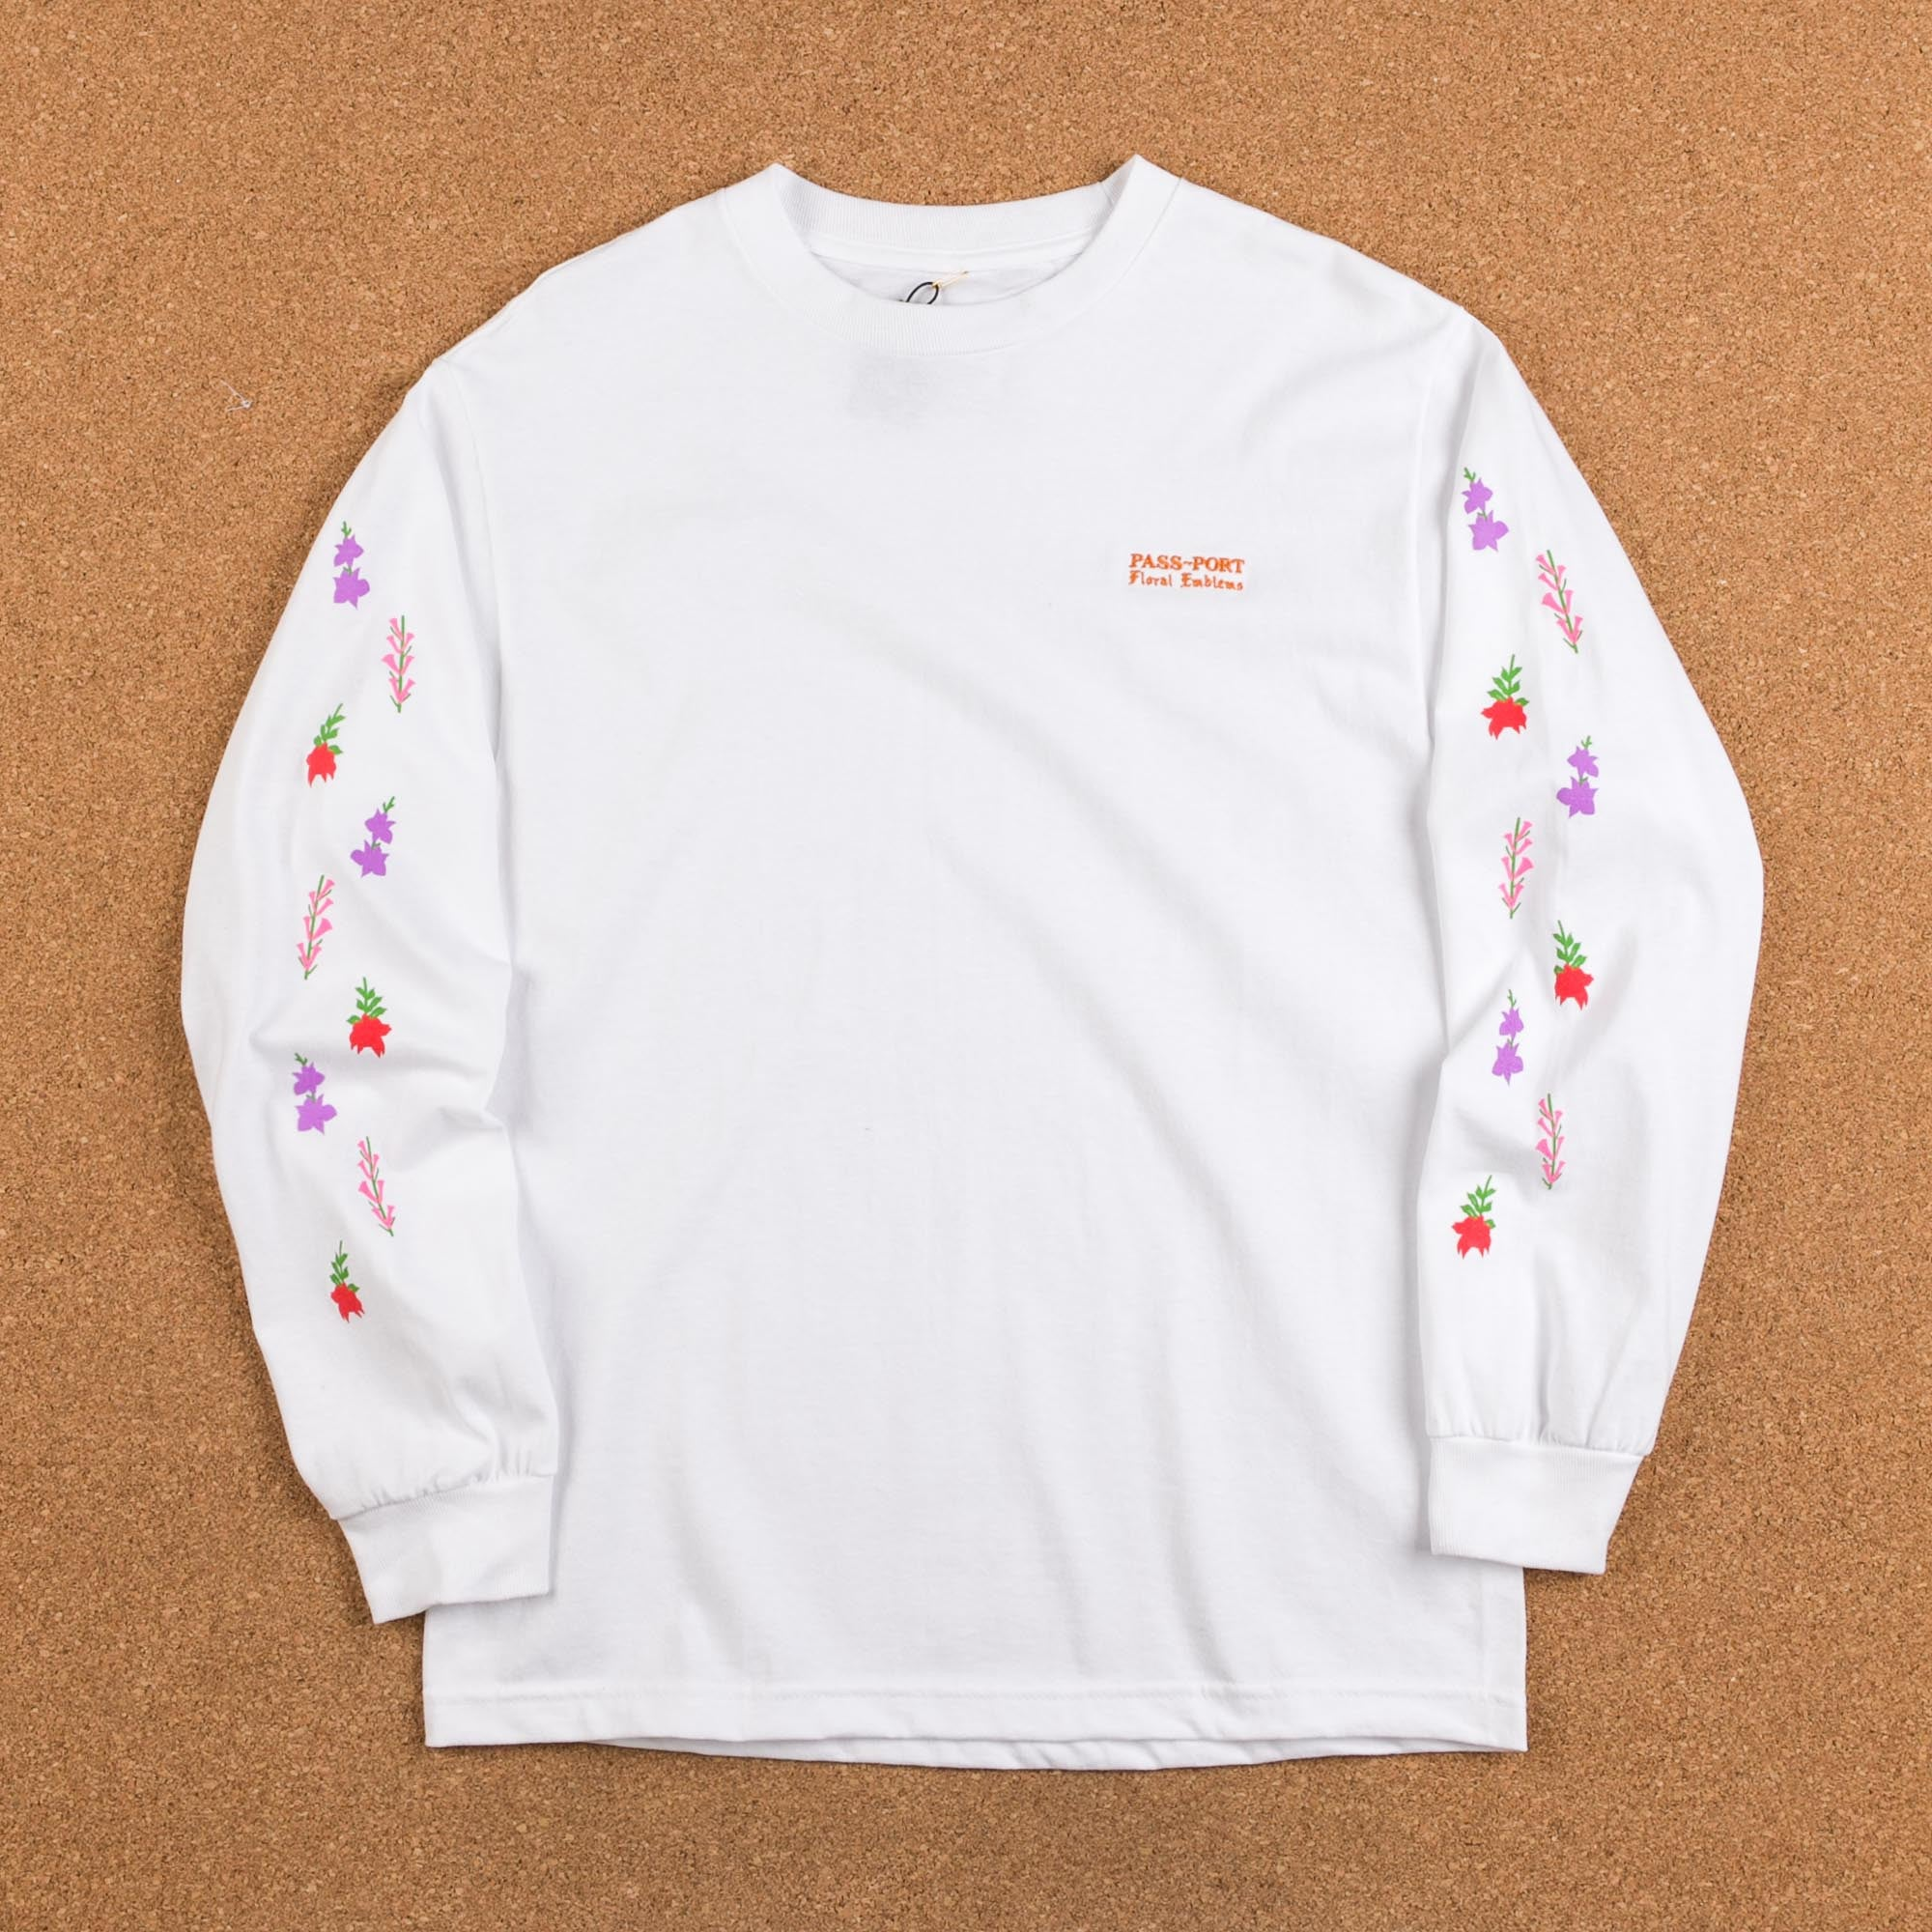 Pass Port Floral Emblems Long Sleeve T-Shirt - White